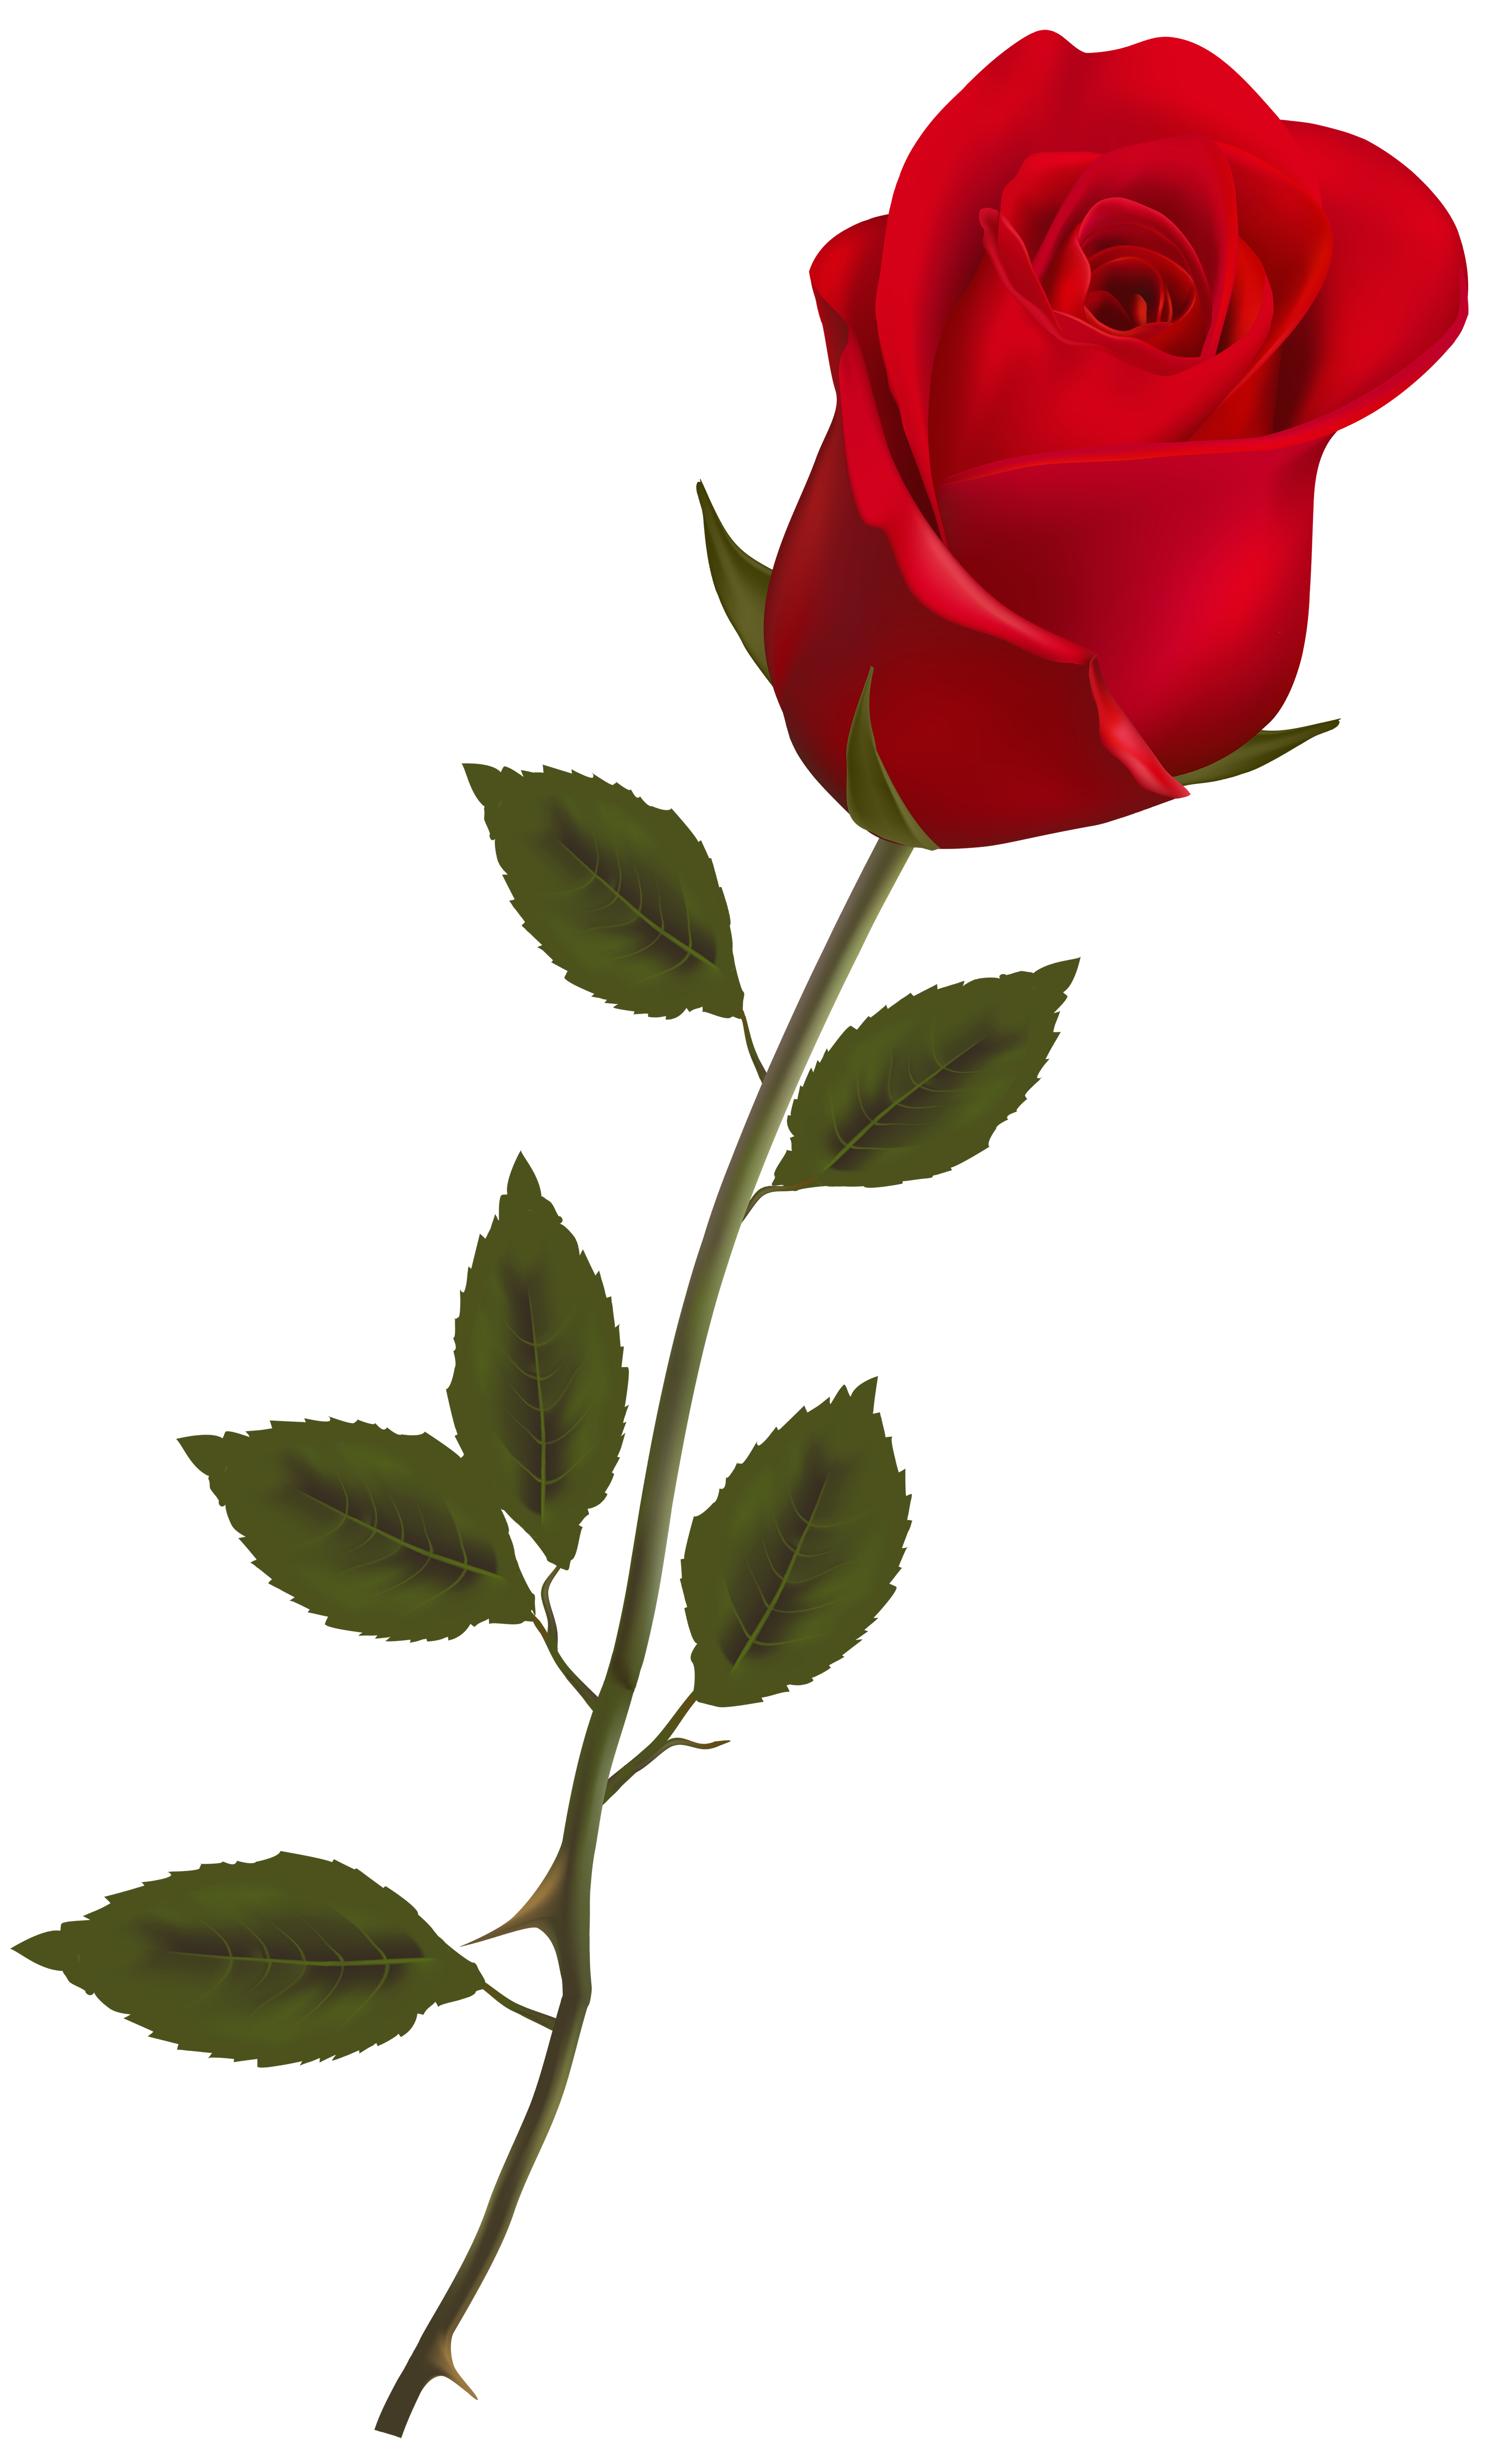 3064x5000 Lions Red Rose Png, Red Roses